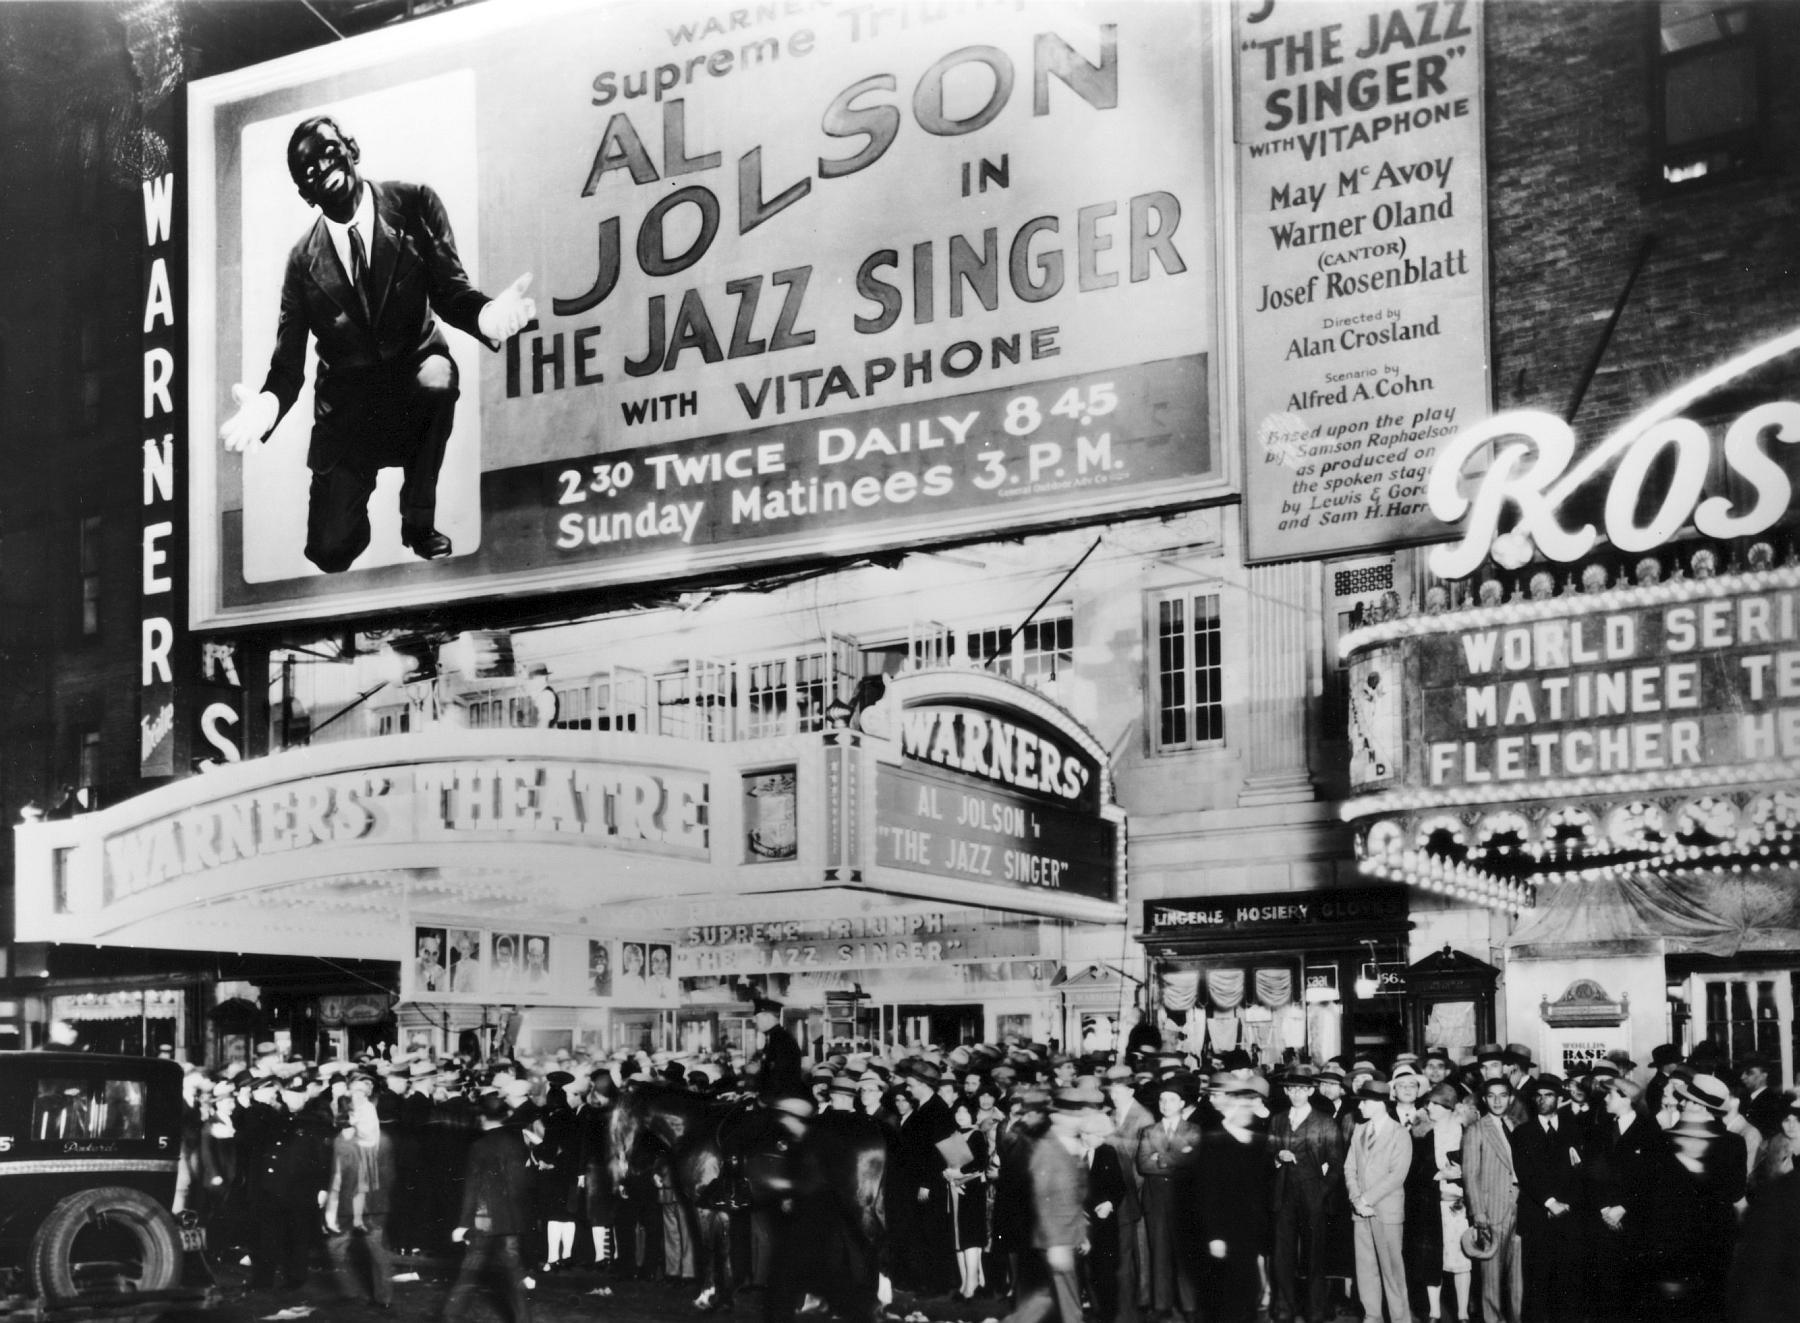 The Al Jolson movie premiere, The Jazz Singer